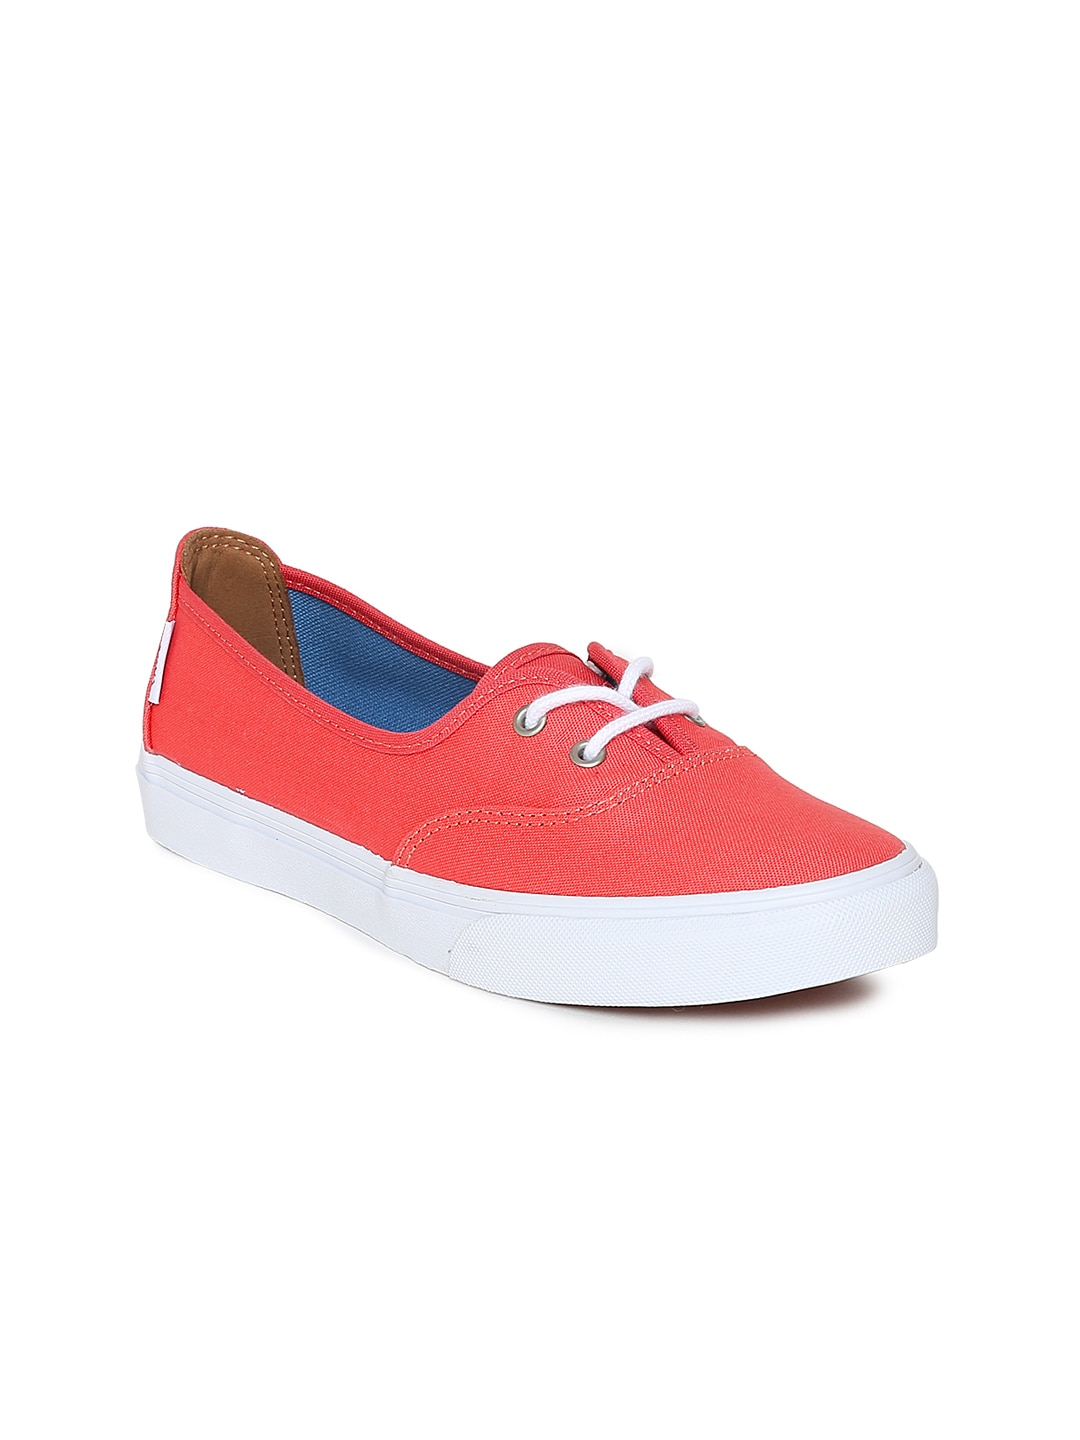 704911d6943e Vans Solana Sf Peach Casual Sneakers for women - Get stylish shoes ...